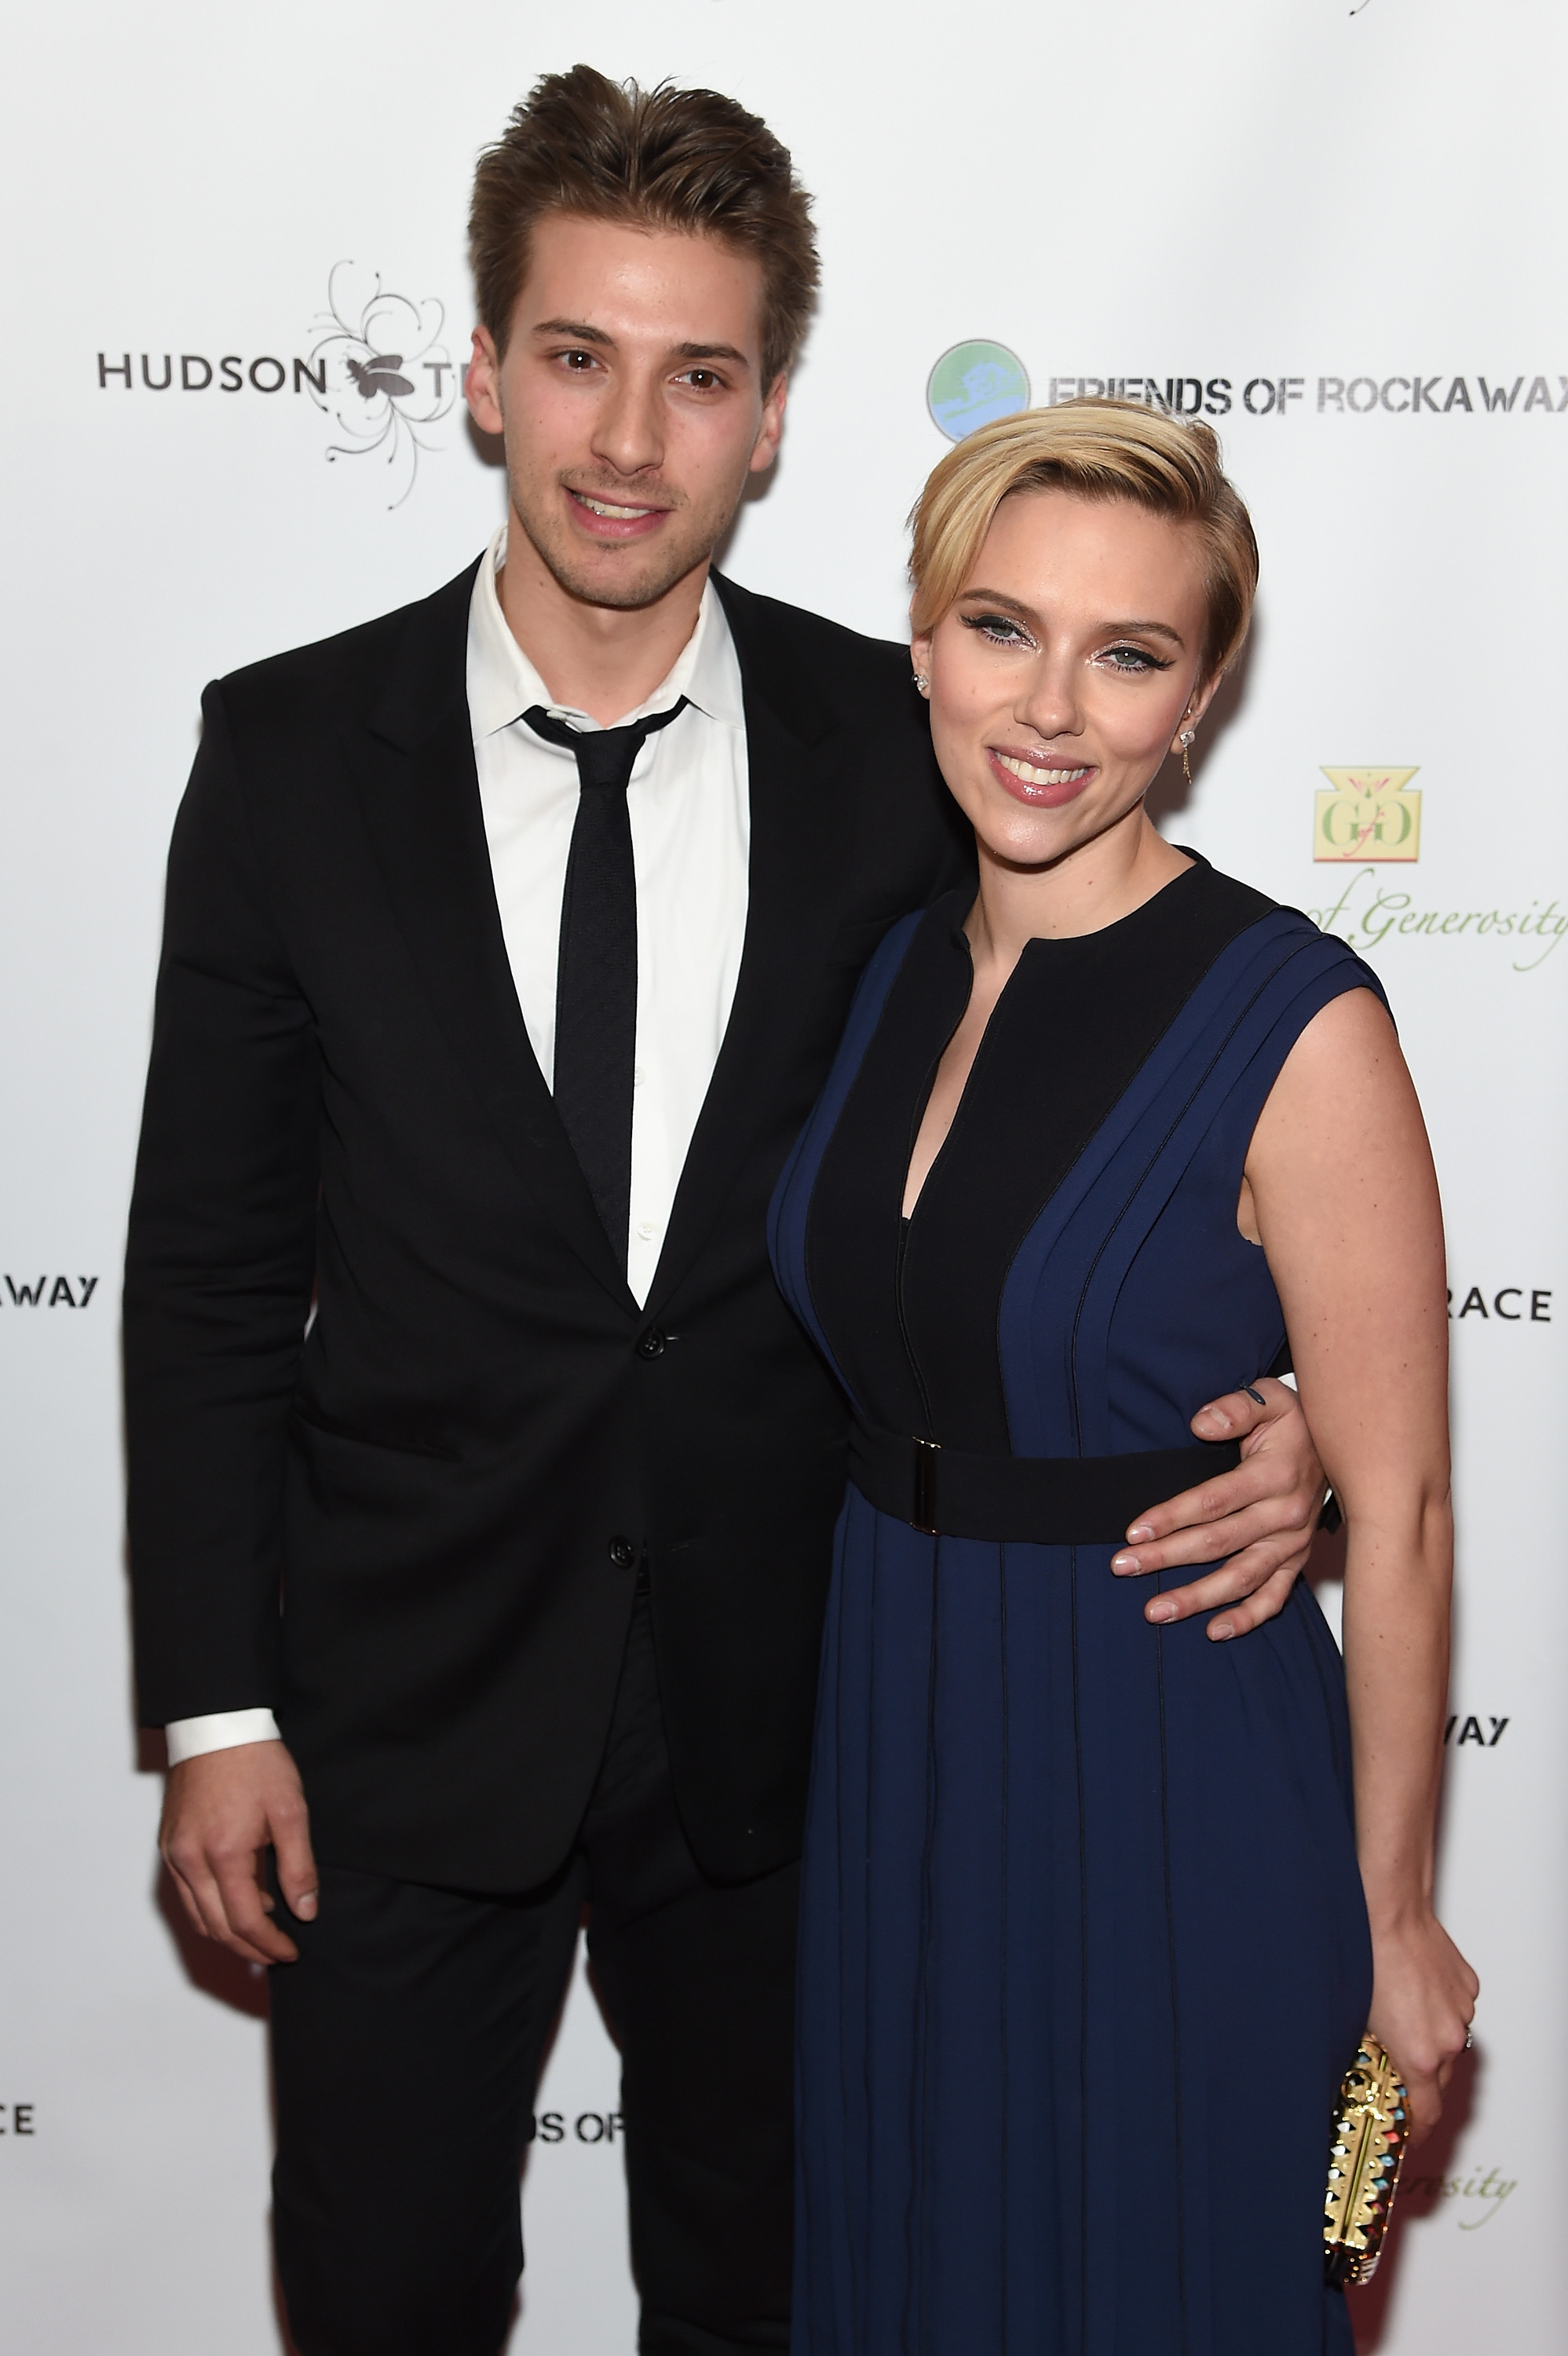 NEW YORK, NY - NOVEMBER 18:  Actors Hunter Johansson (L) and Scarlett Johansson attends the Friends Of Rockaway 2nd annual Hurricane Sandy fundraiser at Hudson Terrace on November 18, 2014 in New York City.  (Photo by Jamie McCarthy/Getty Images for Friends of Rockaway)